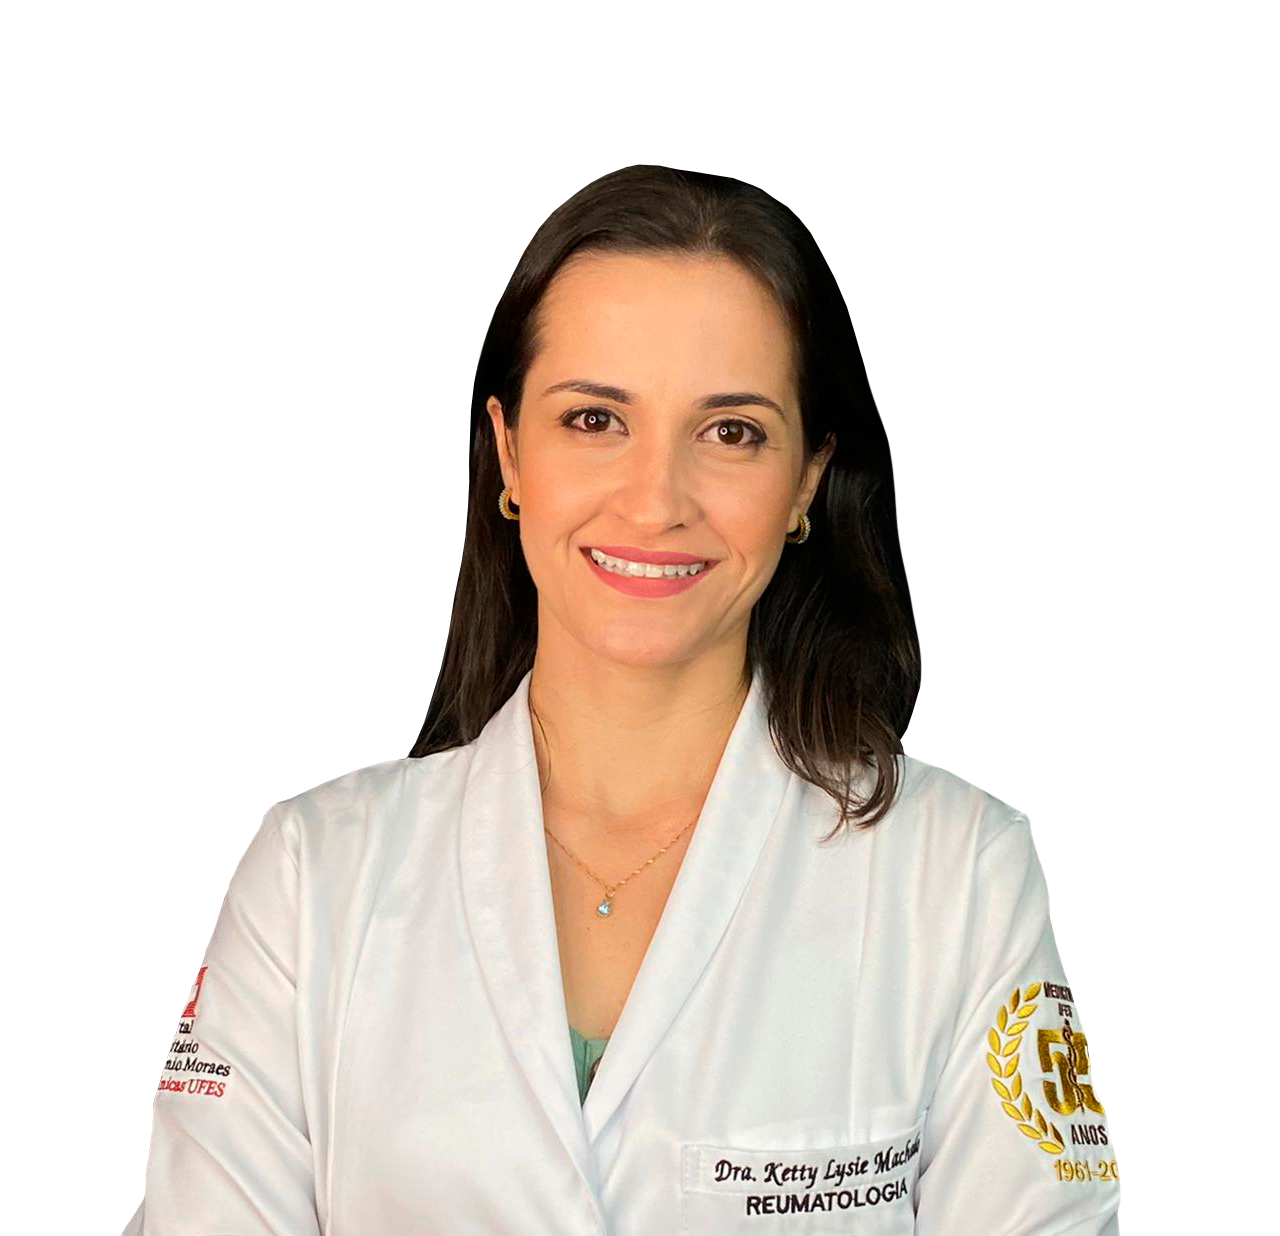 https://medquimheo.com.br/wp-content/uploads/2019/03/Dra-Ketty-edit-1.png